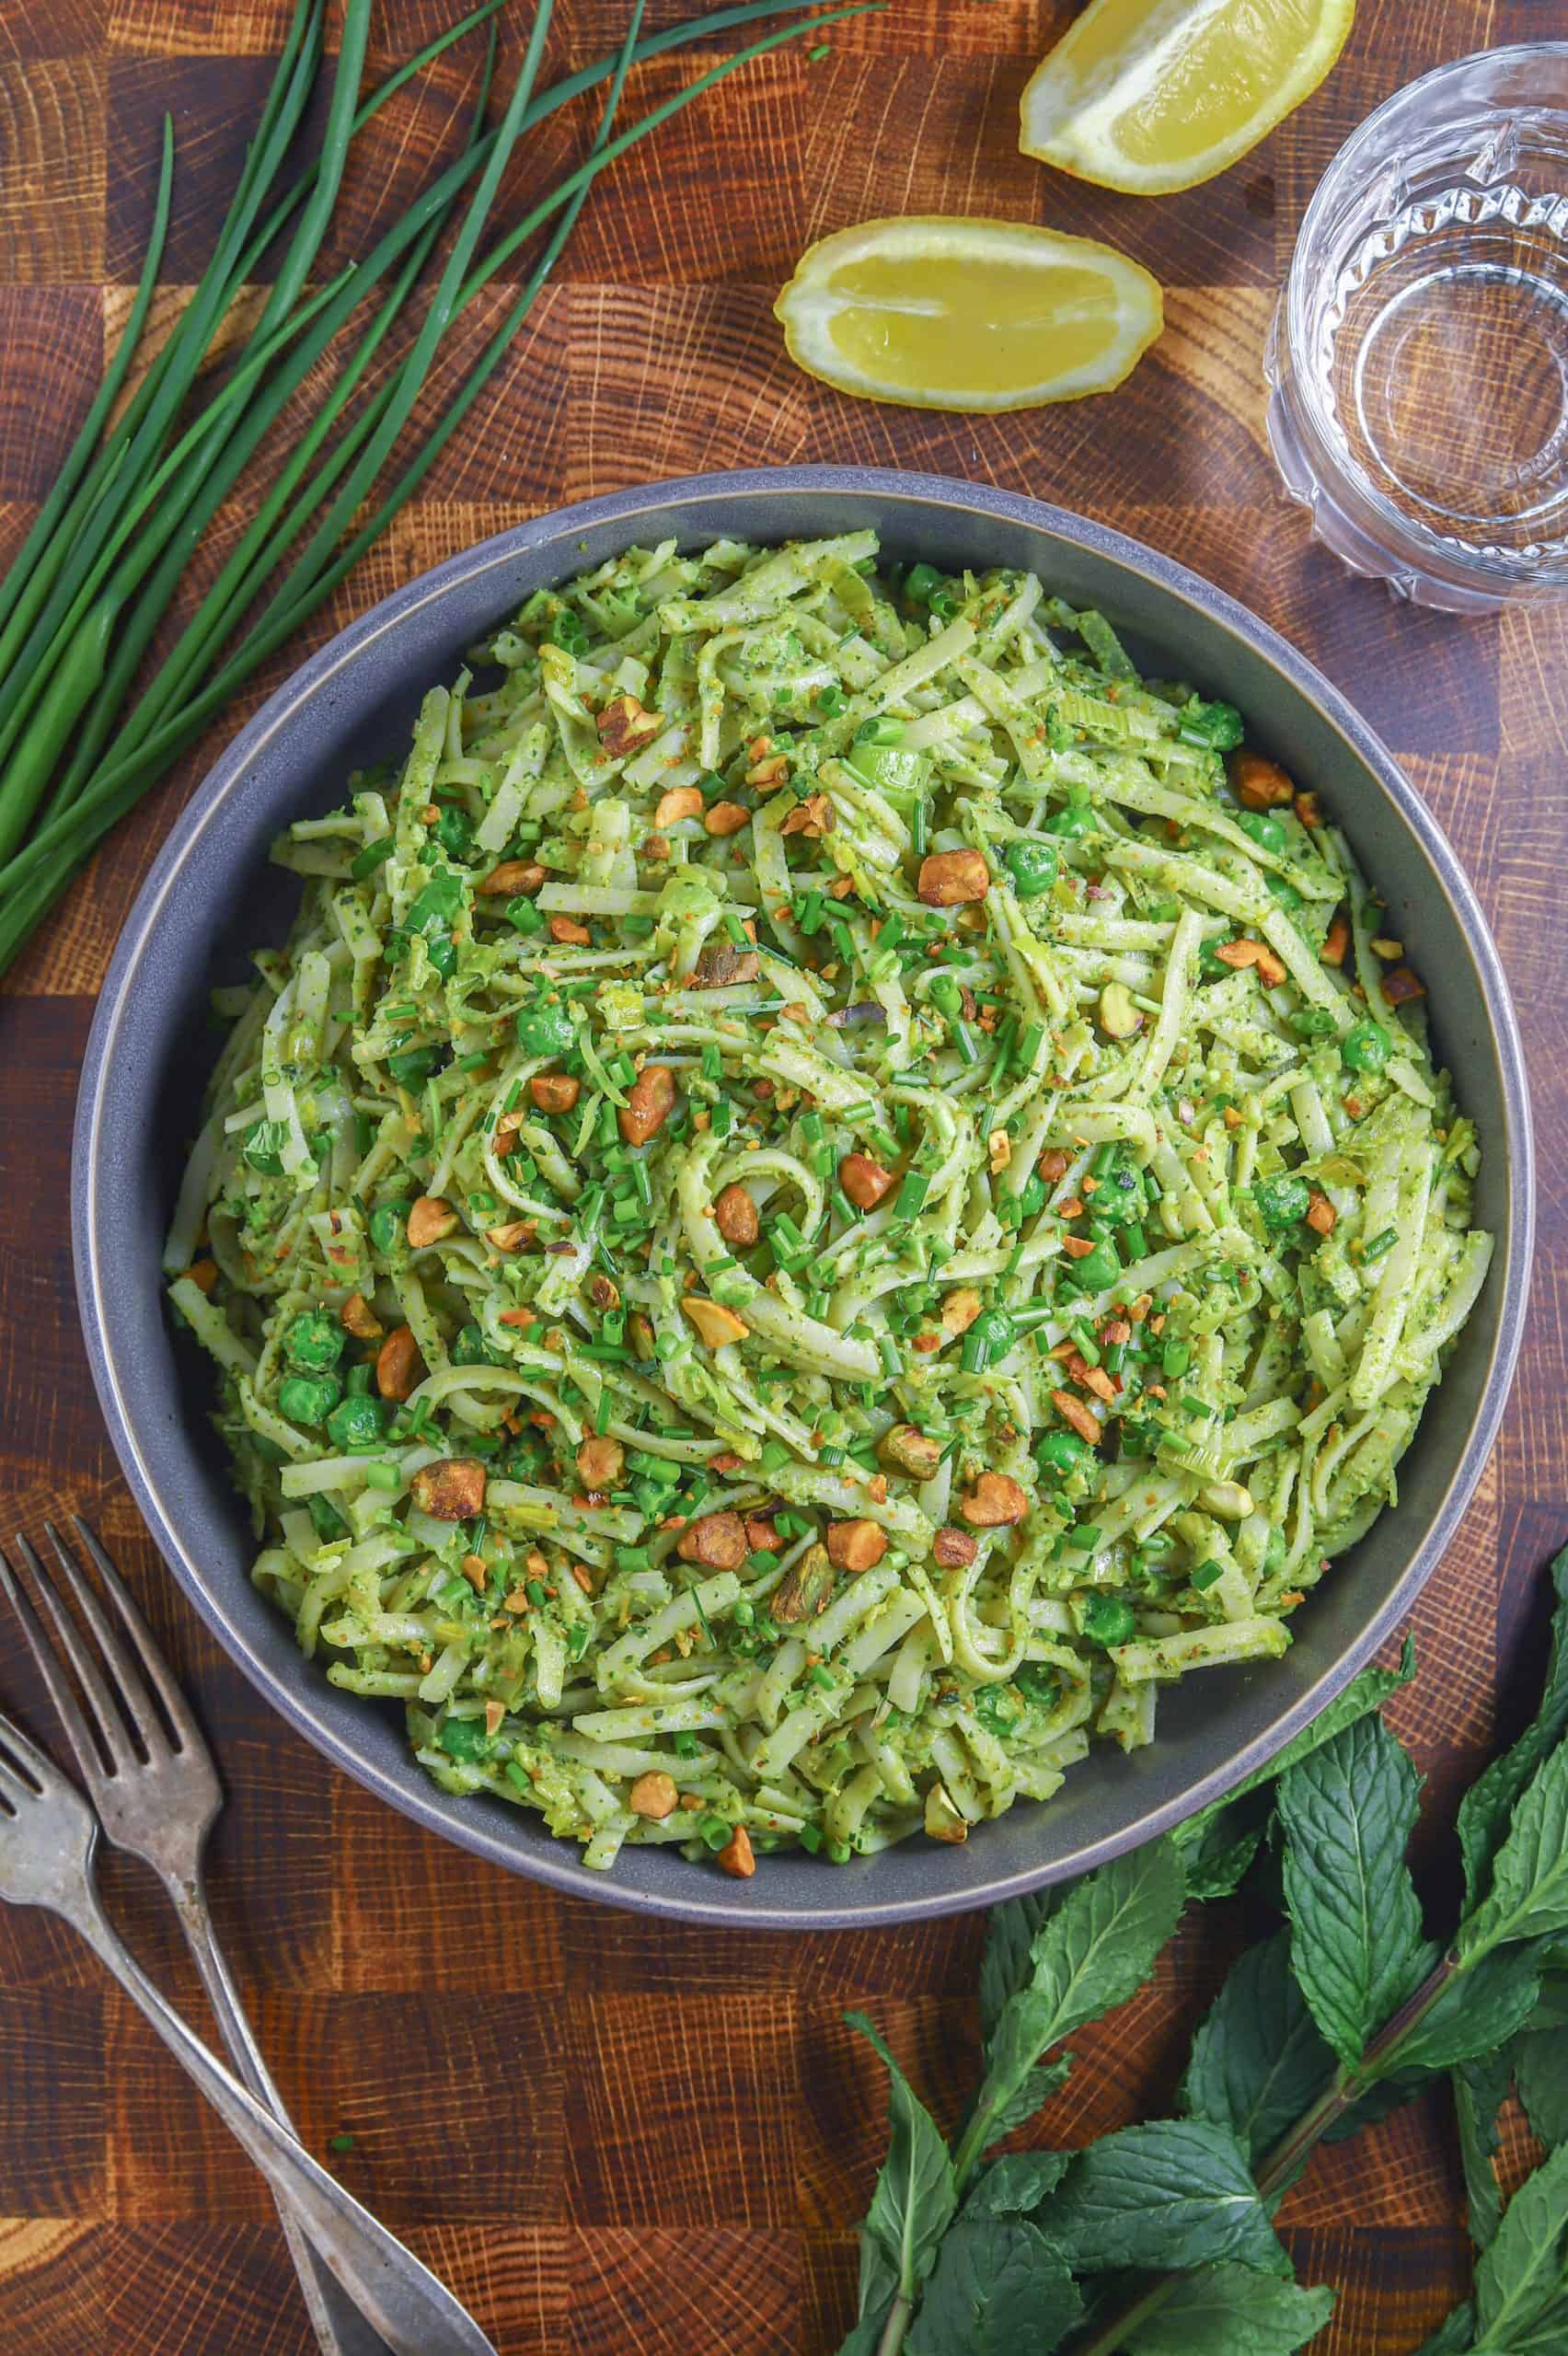 green pea pasta in a bowl with mint